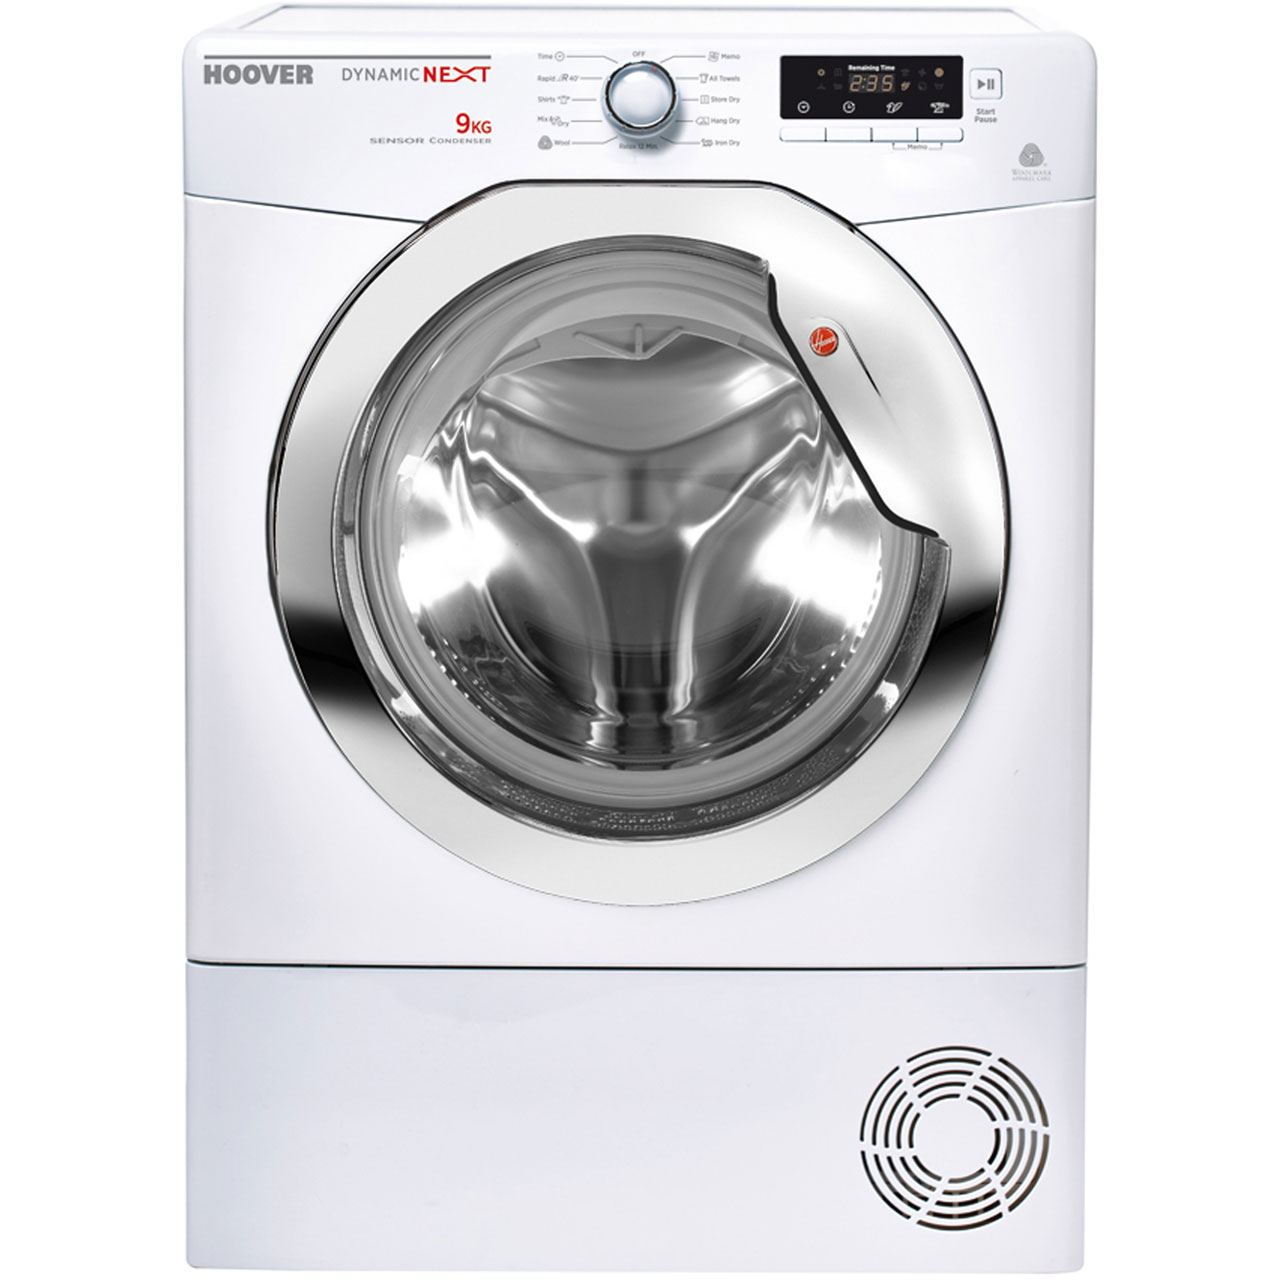 Hoover Dynamic Next DNCD91B Condenser Tumble Dryer - White